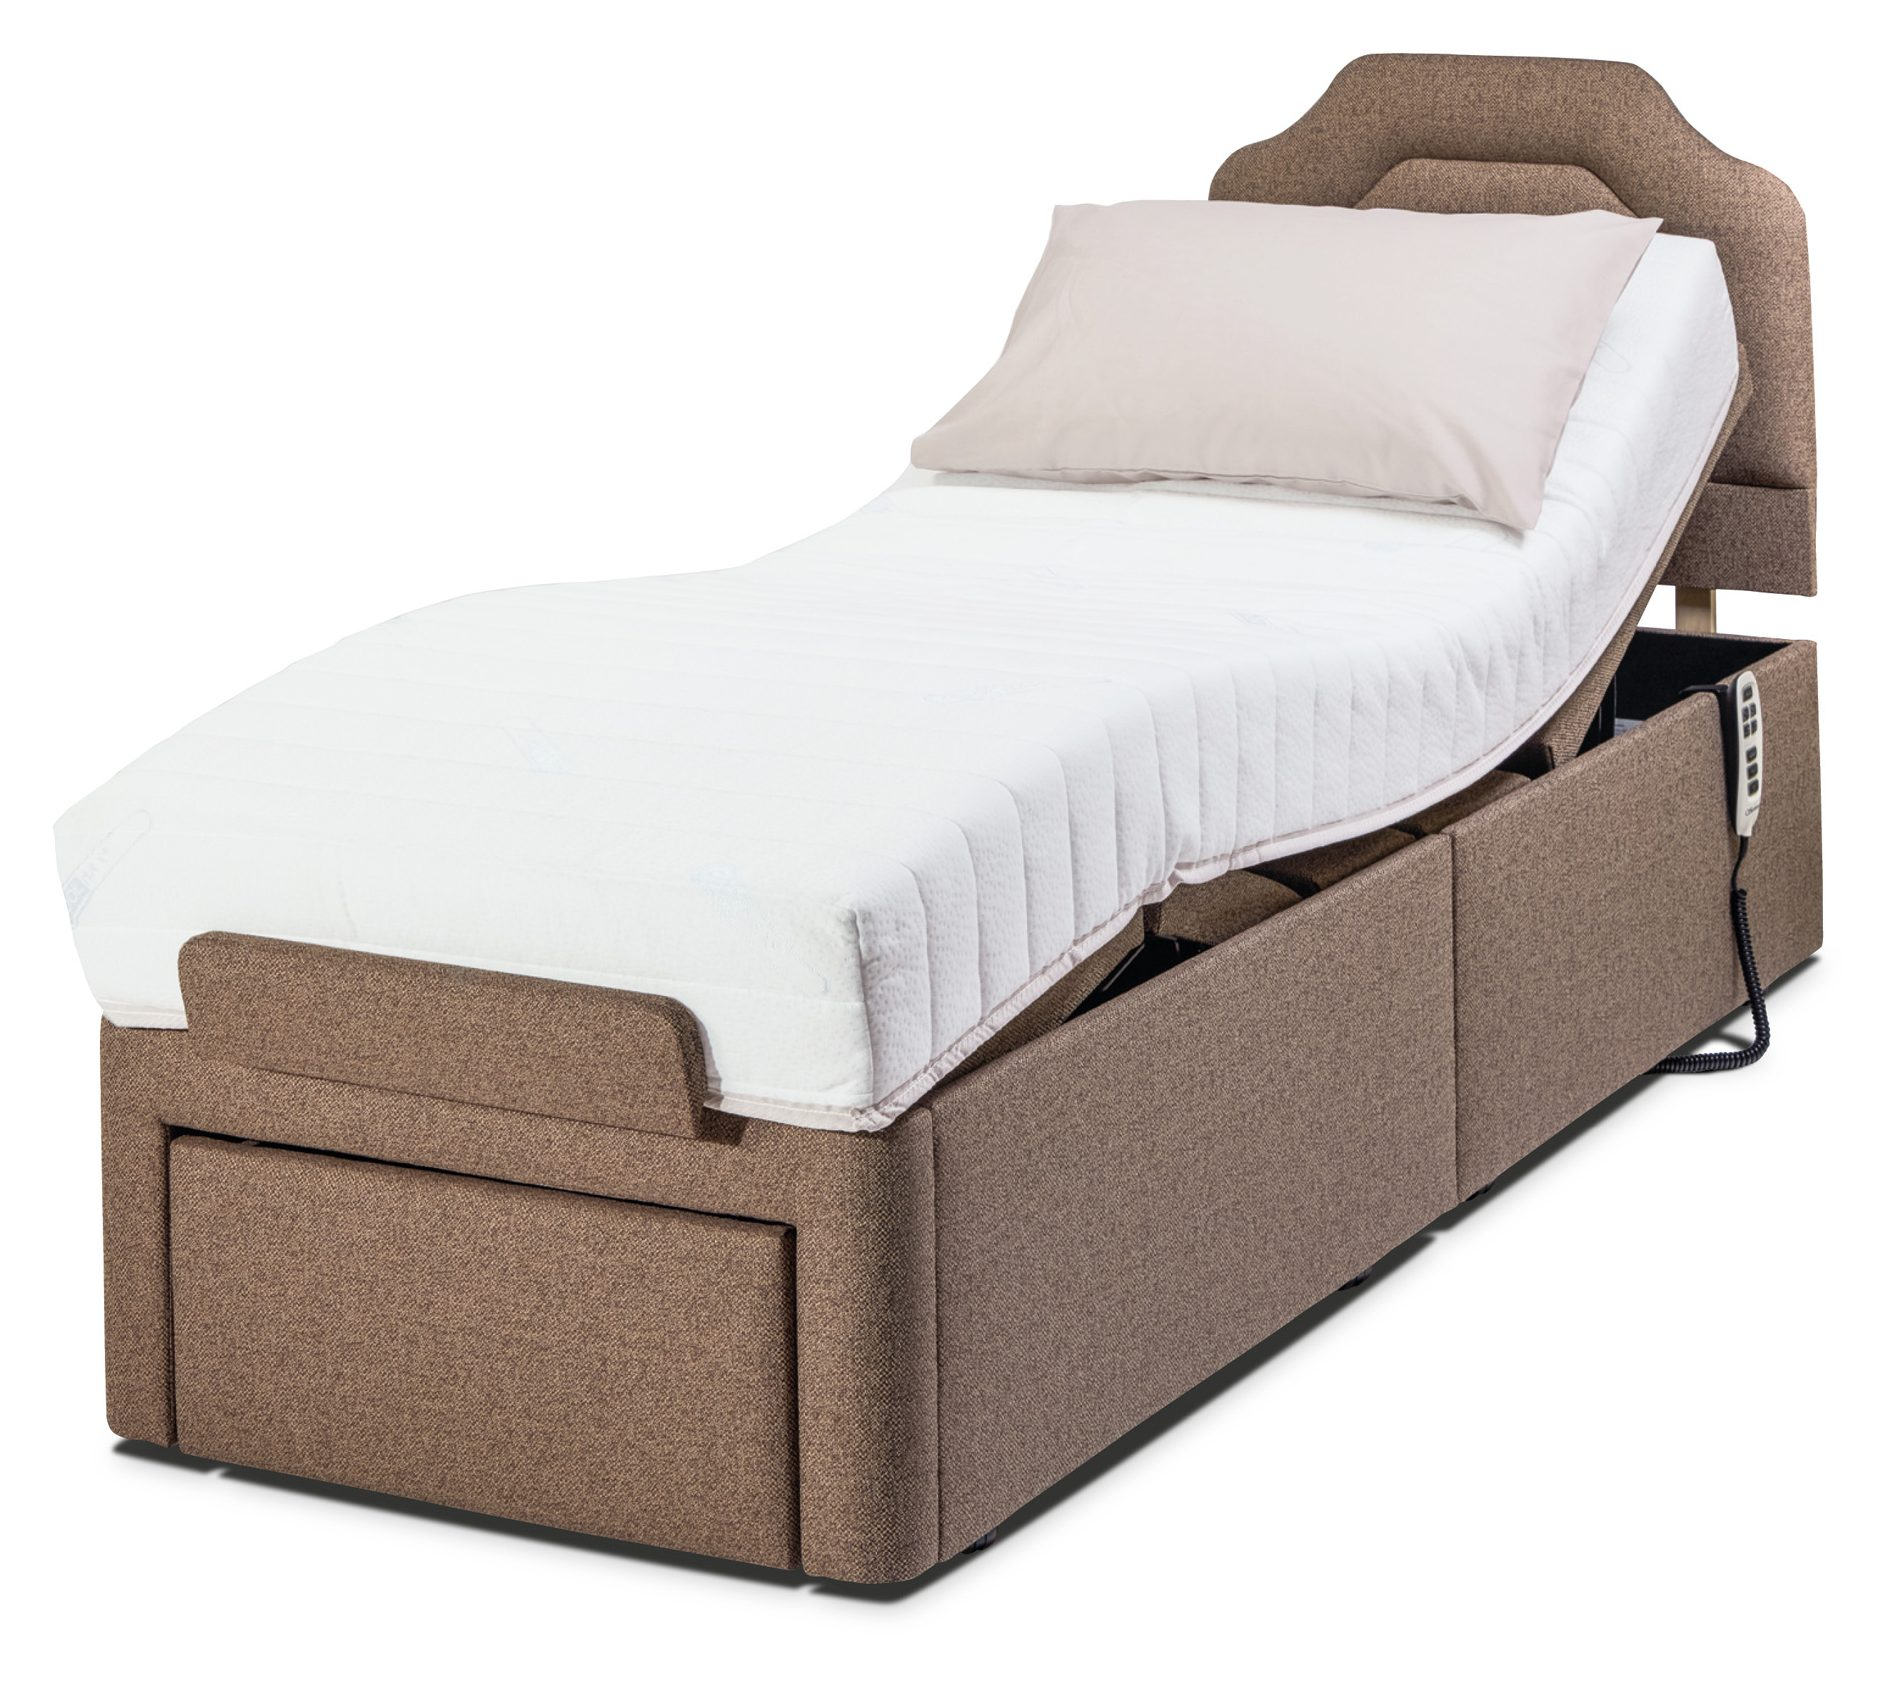 hight resolution of sherborne upholstery dorchester adjustable bed with deluxe mattress adjustable beds hafren furnishers